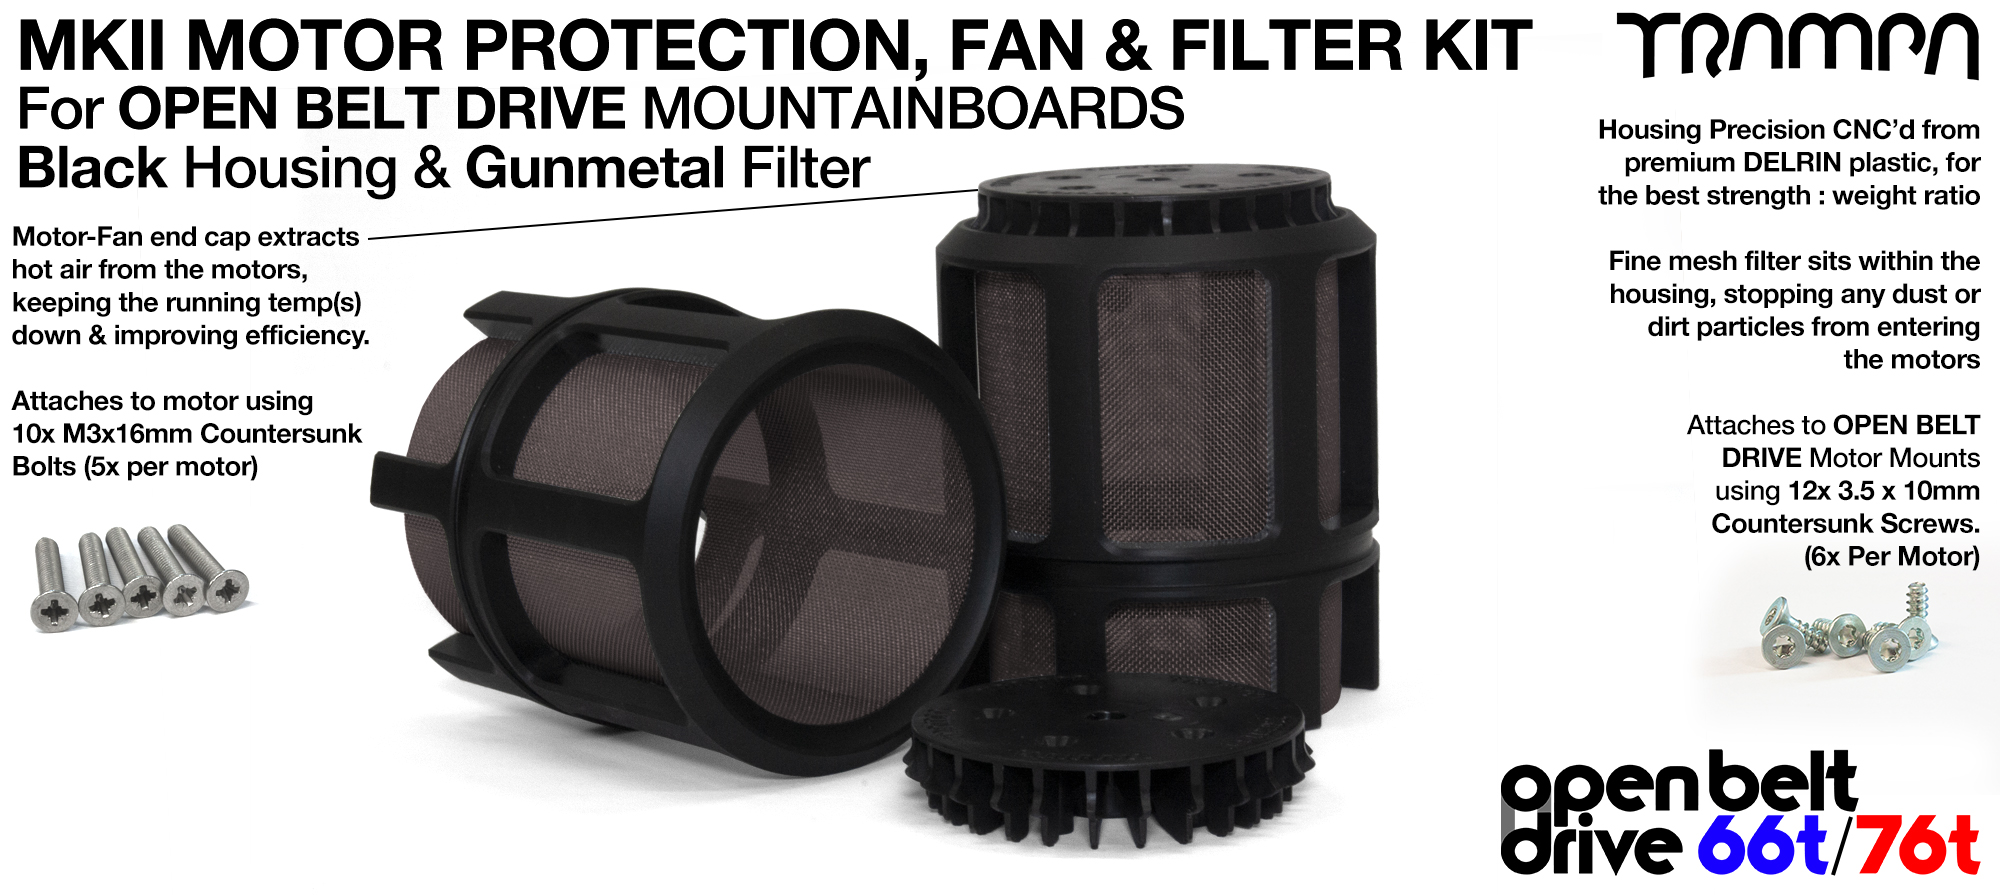 Motor Protection Cage with Fan - GUNMETAL filter